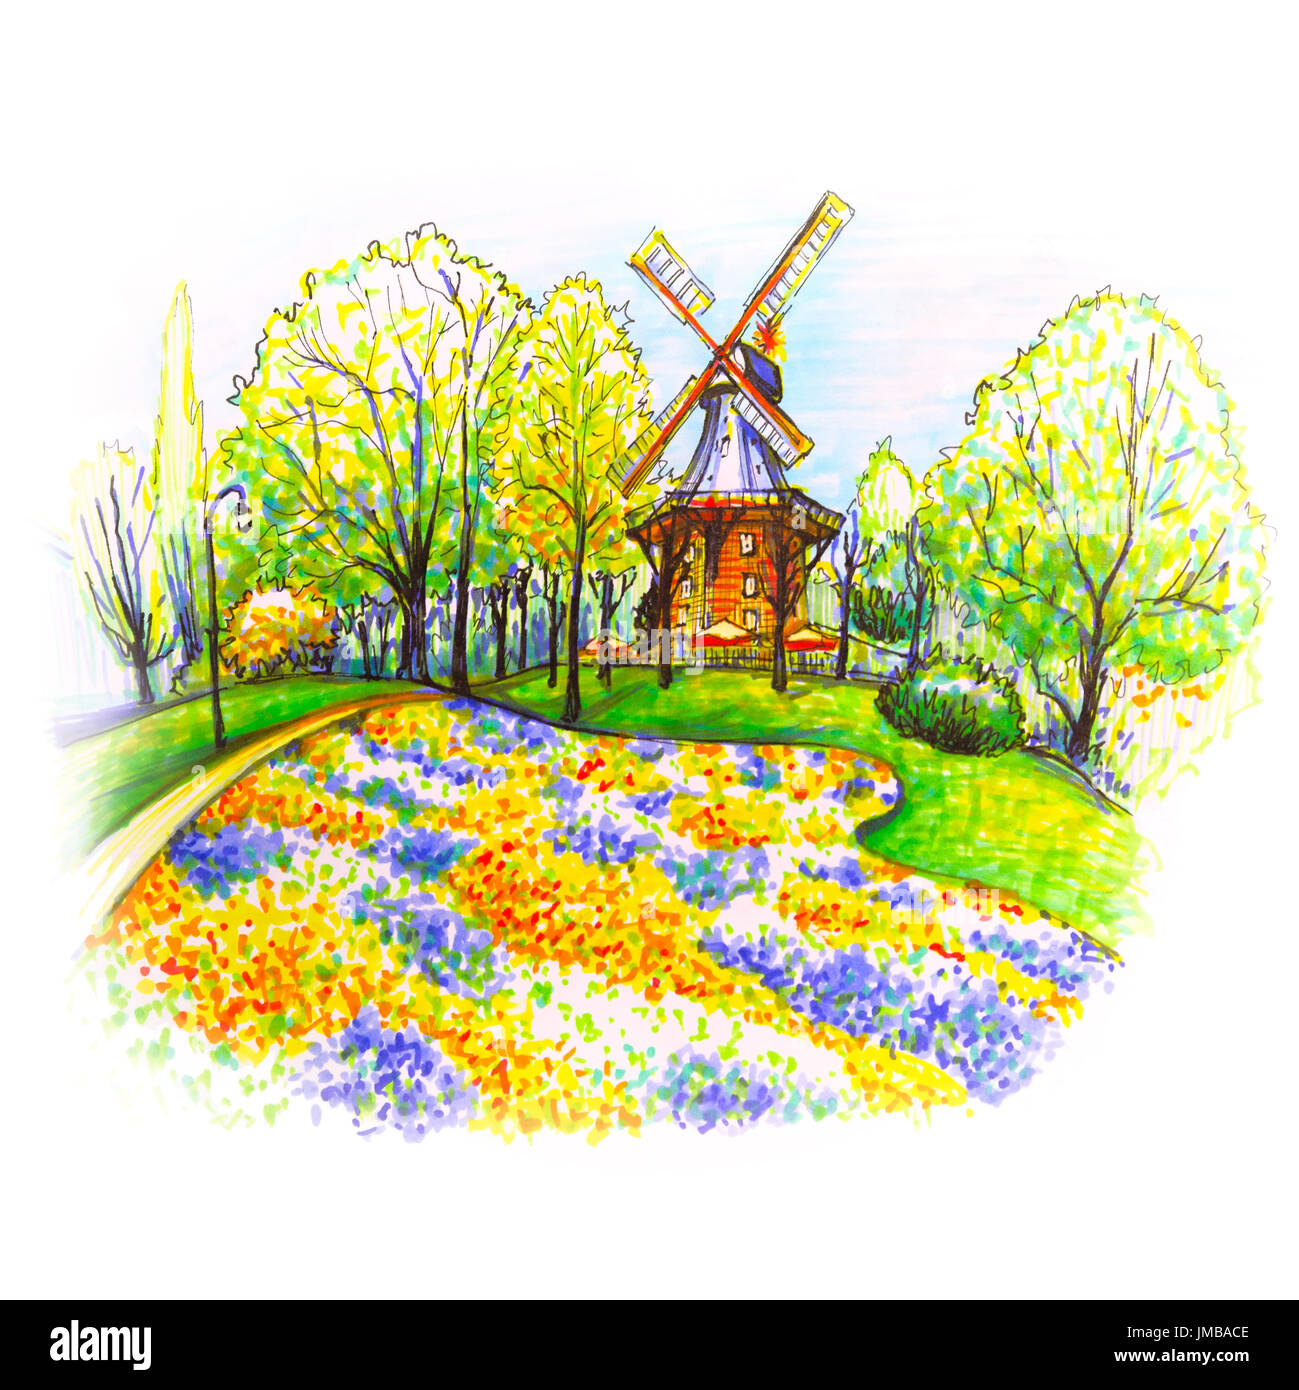 Popular city park Wallanlagen with Am Wall Windmill and colorful flowers foreground in Bremen, Germany. Hand drawn picture made markers and liner - Stock Image